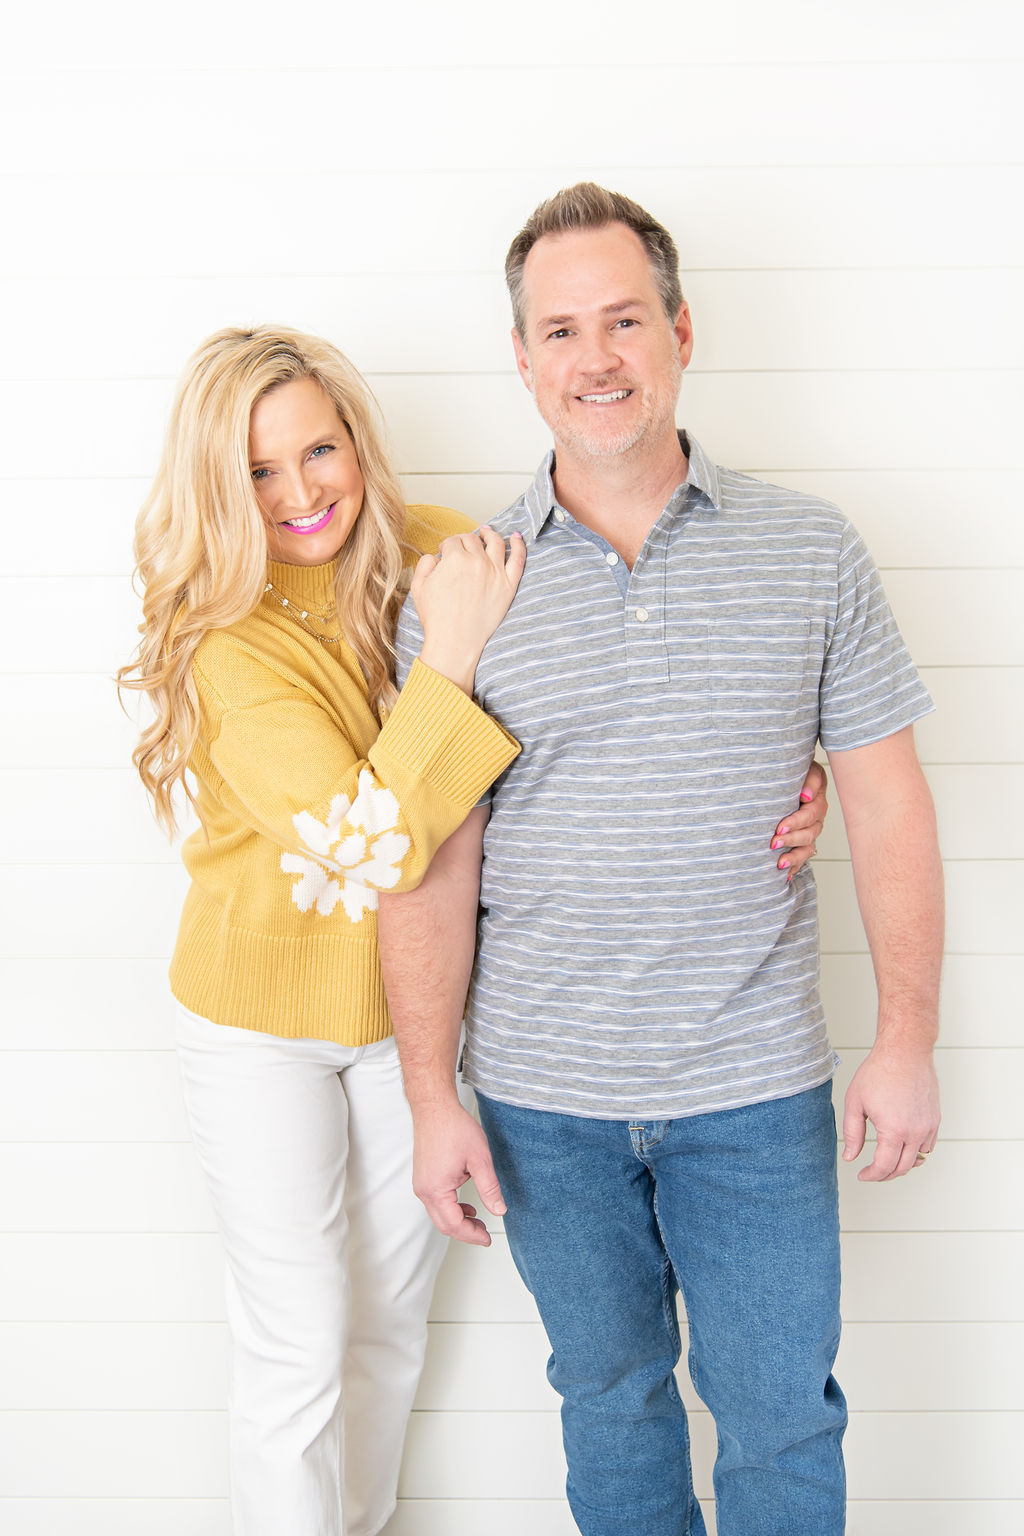 Little Black Dresses by popular Houston fashion blog, The House of Fancy: image of a man and woman standing together and wearing a grey and white stripe polo, jeans, grey sneakers, yellow and white floral print sweater, white pants, and white sneakers.